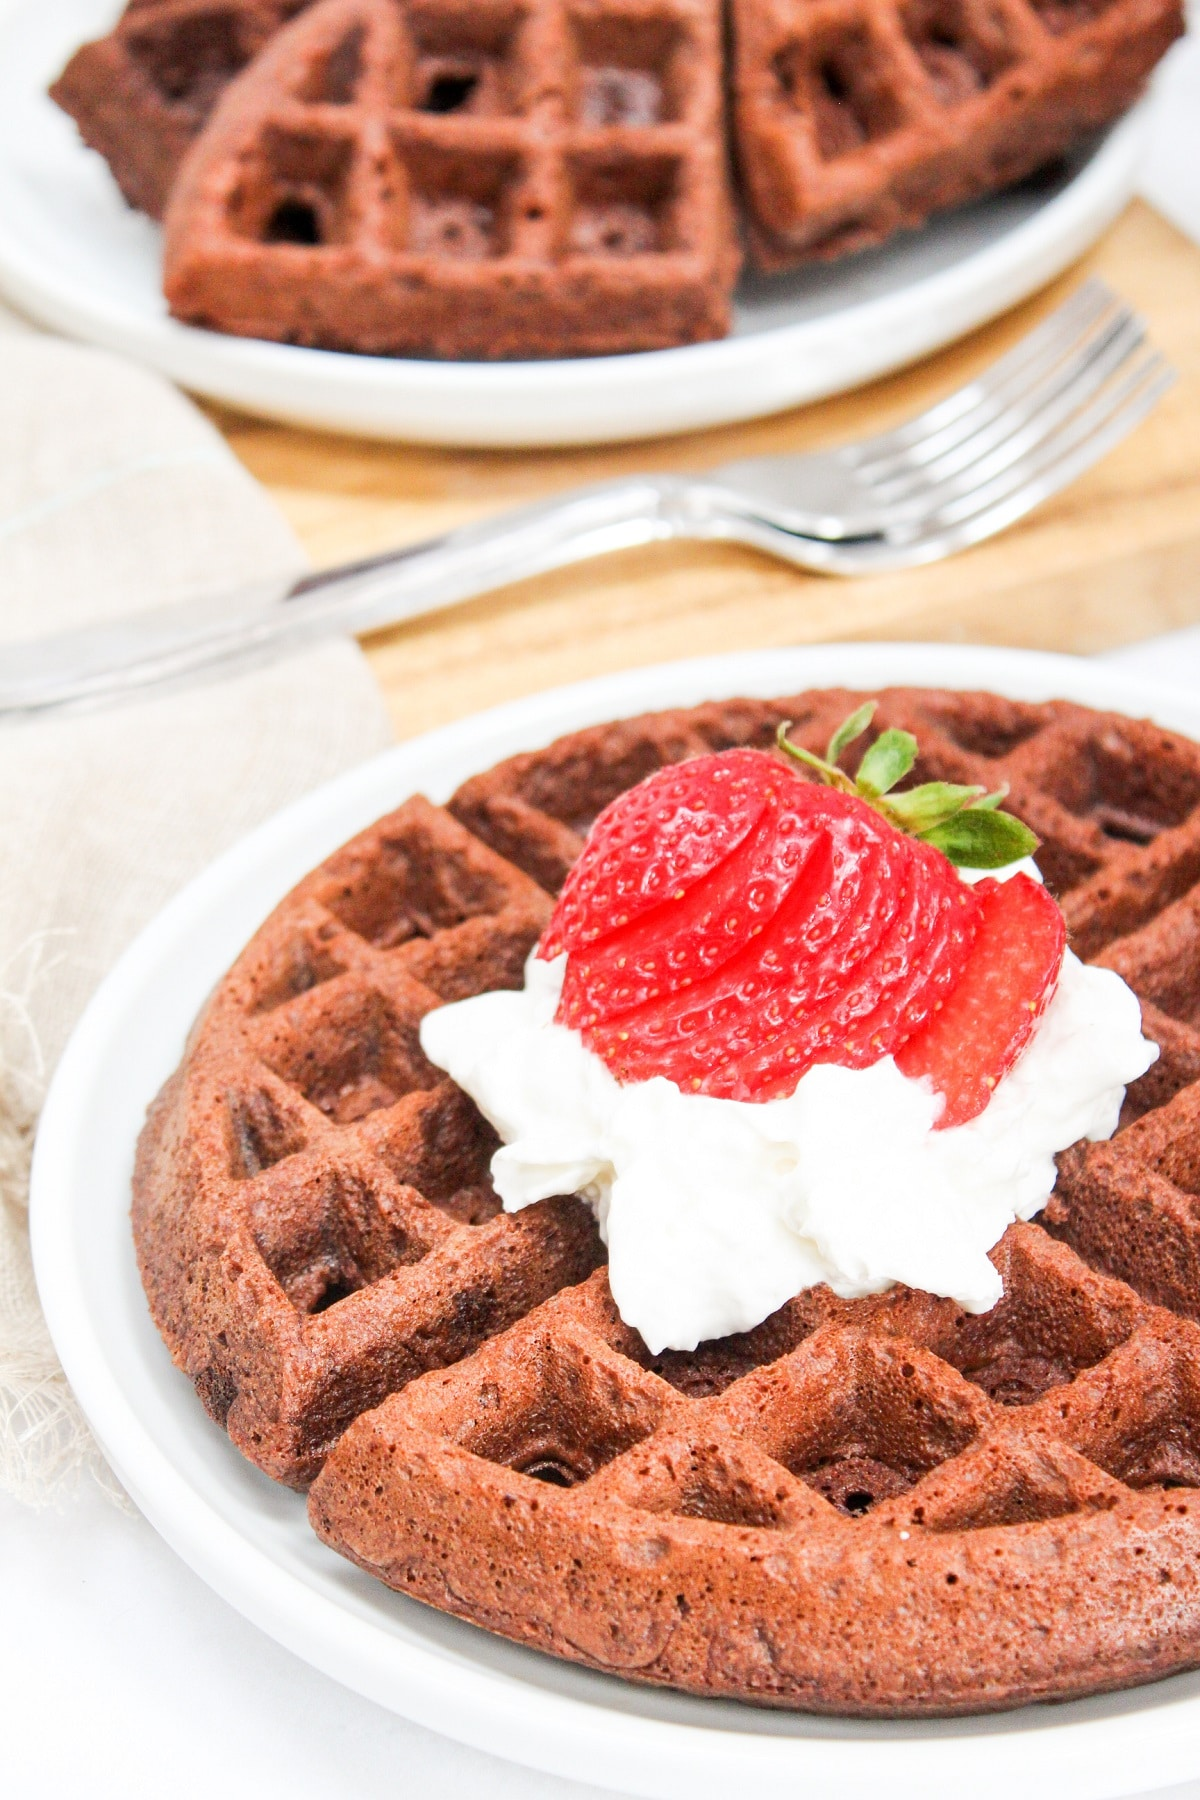 Brownie mix waffles with whipped cream and strawberries on top on a white plate with a plate of waffles in the background